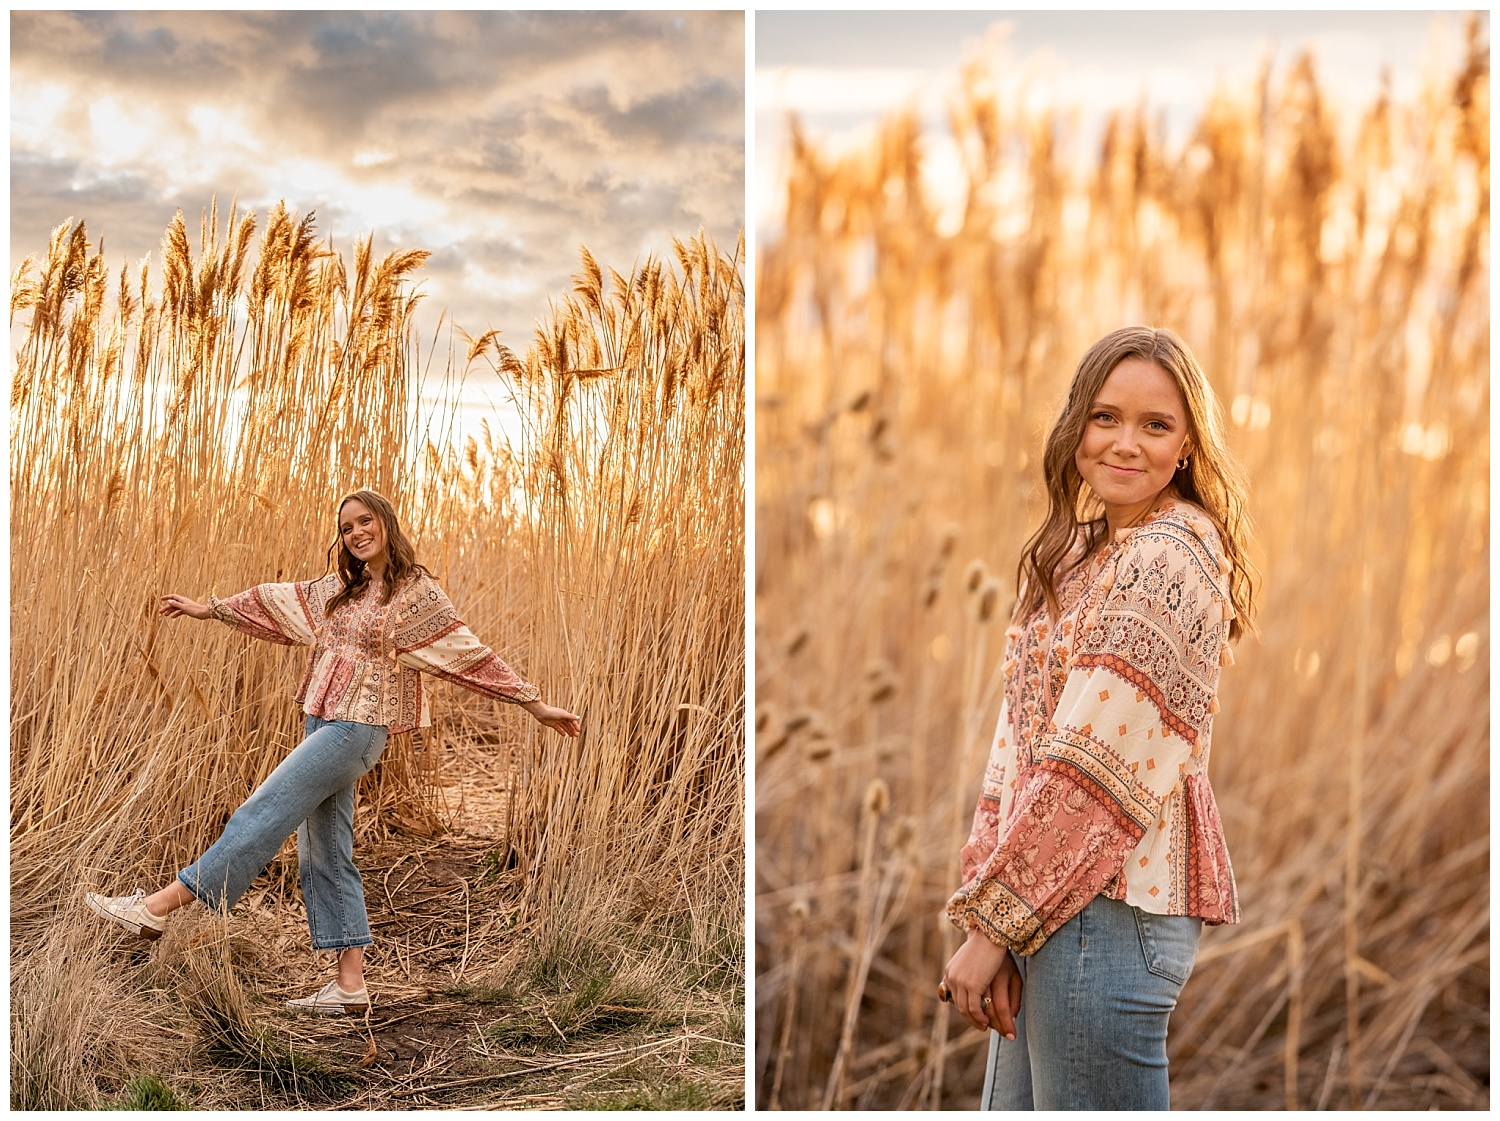 Utah Senior Photographer, Dan Page Photography, Tunnel Springs North Salt Lake Senior Portraits (13).jpg